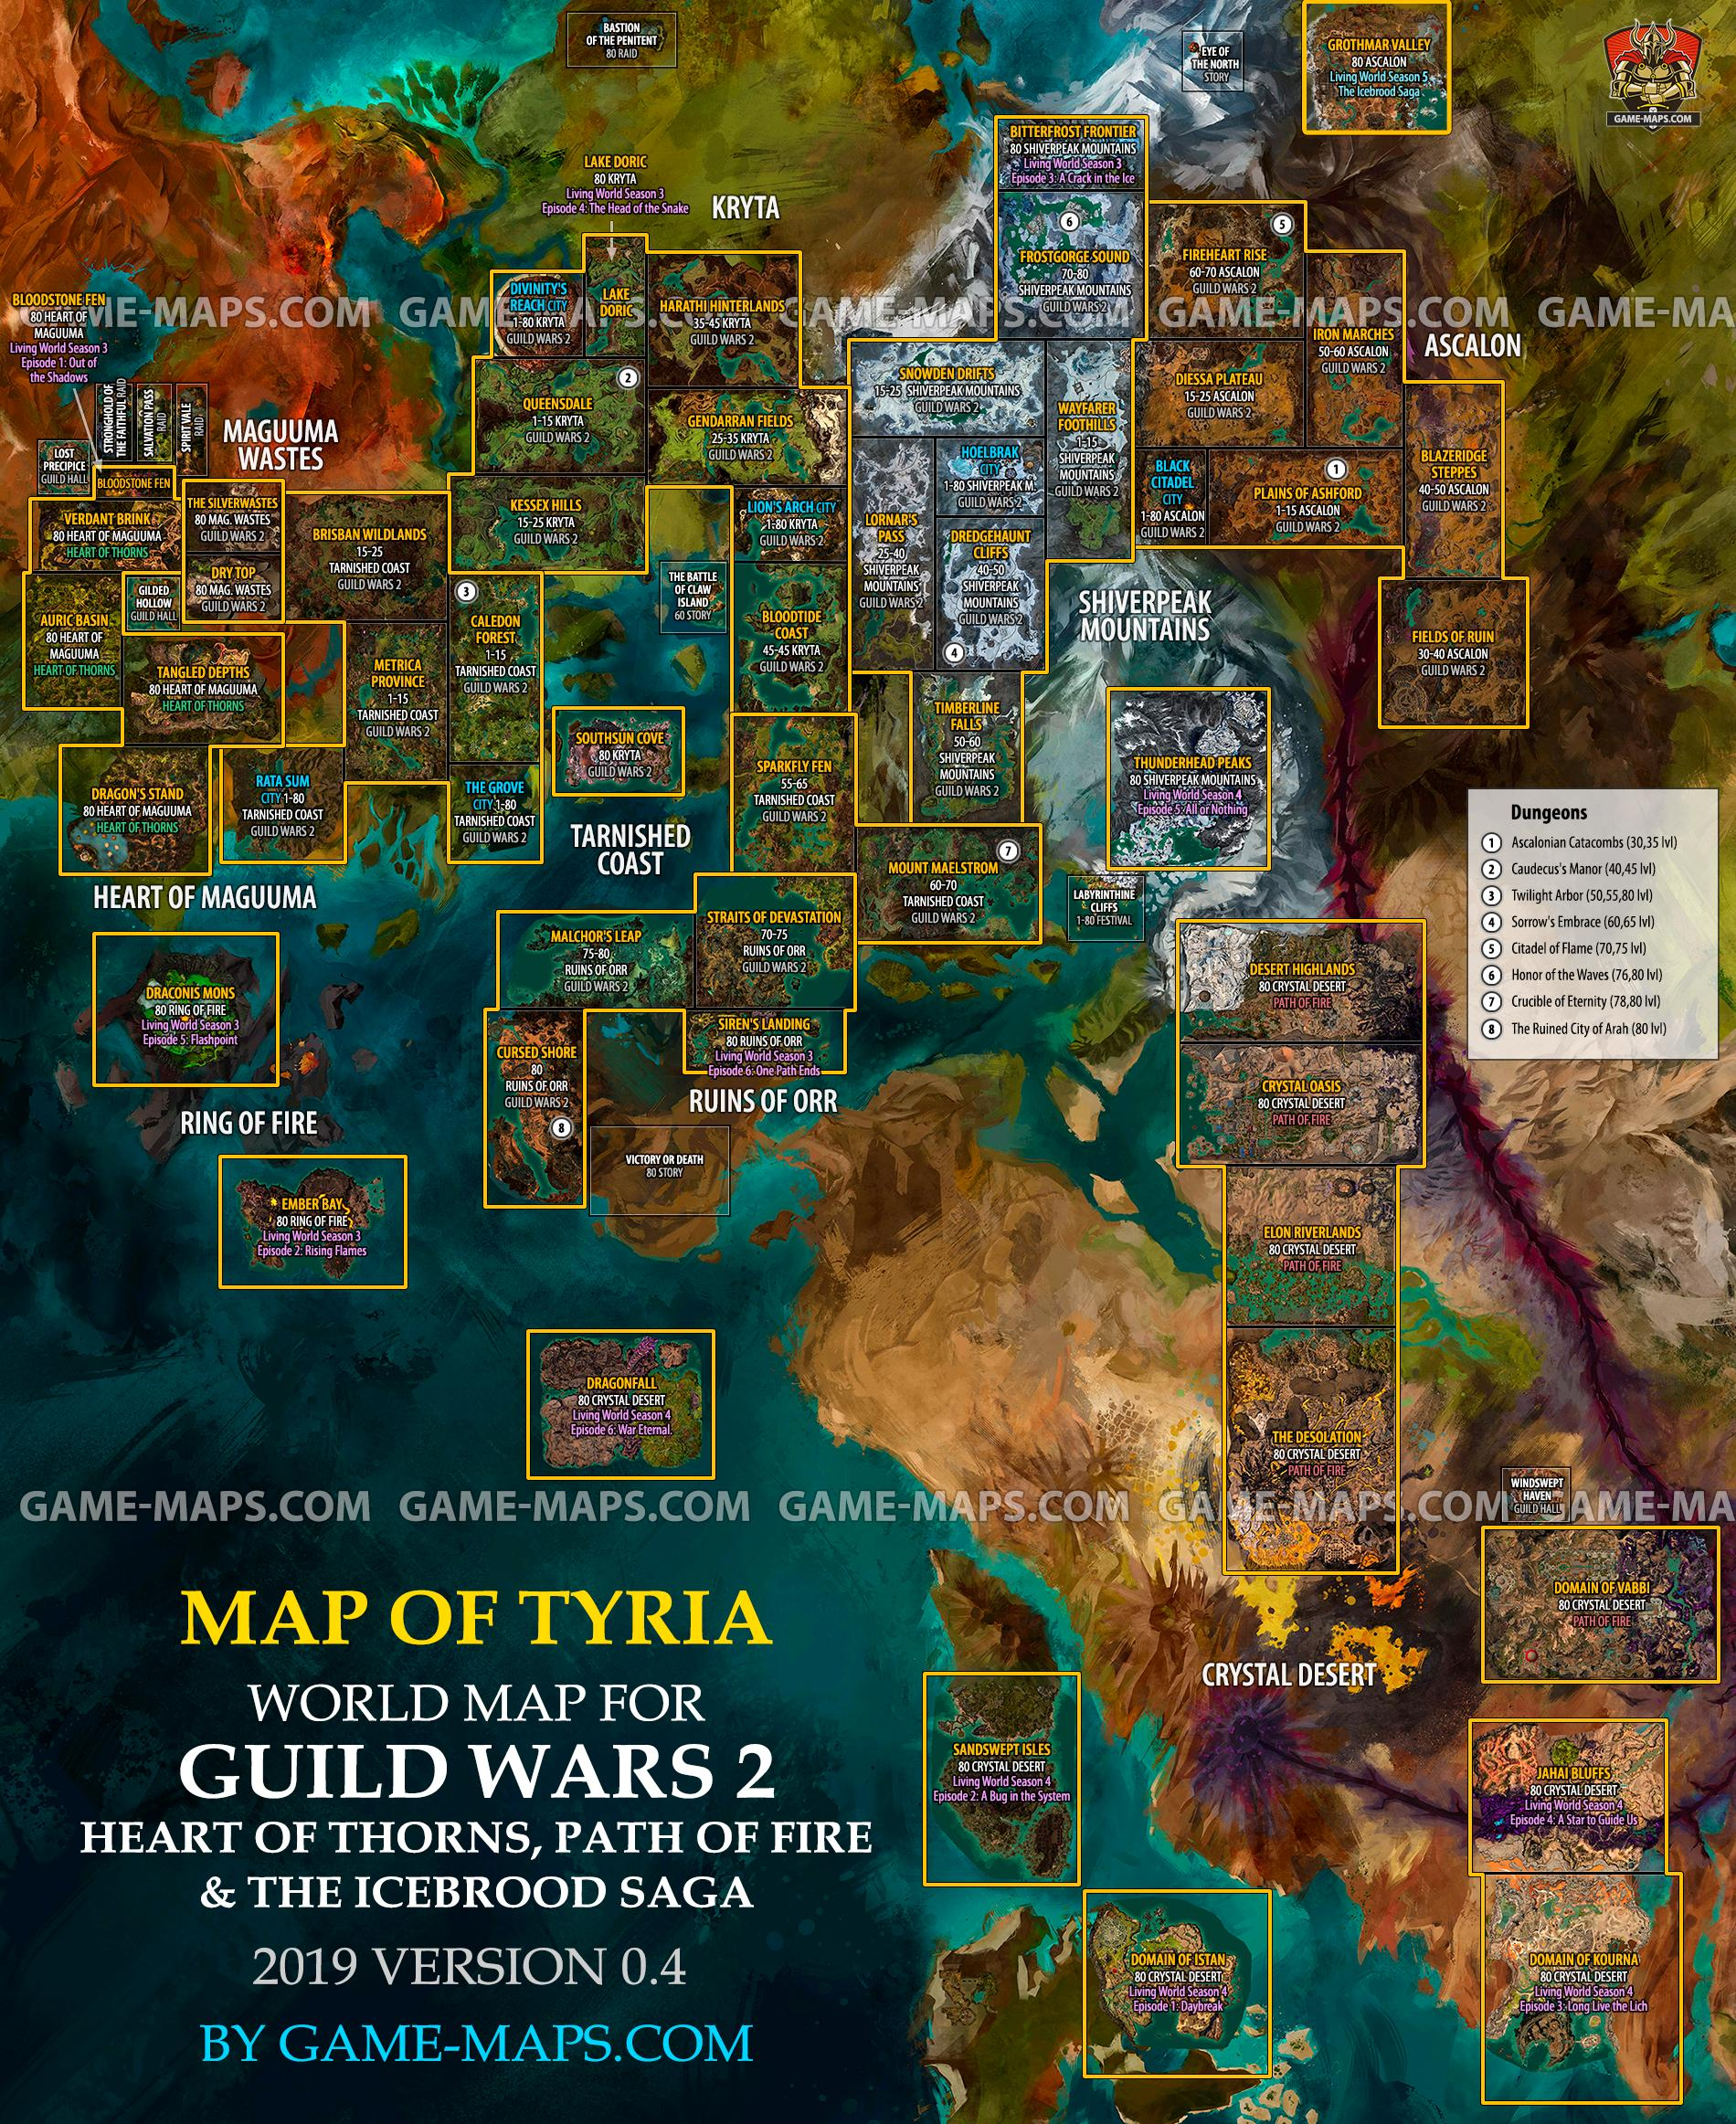 Guild Wars 2 World Map 2019 Zones Levels Game Maps Com